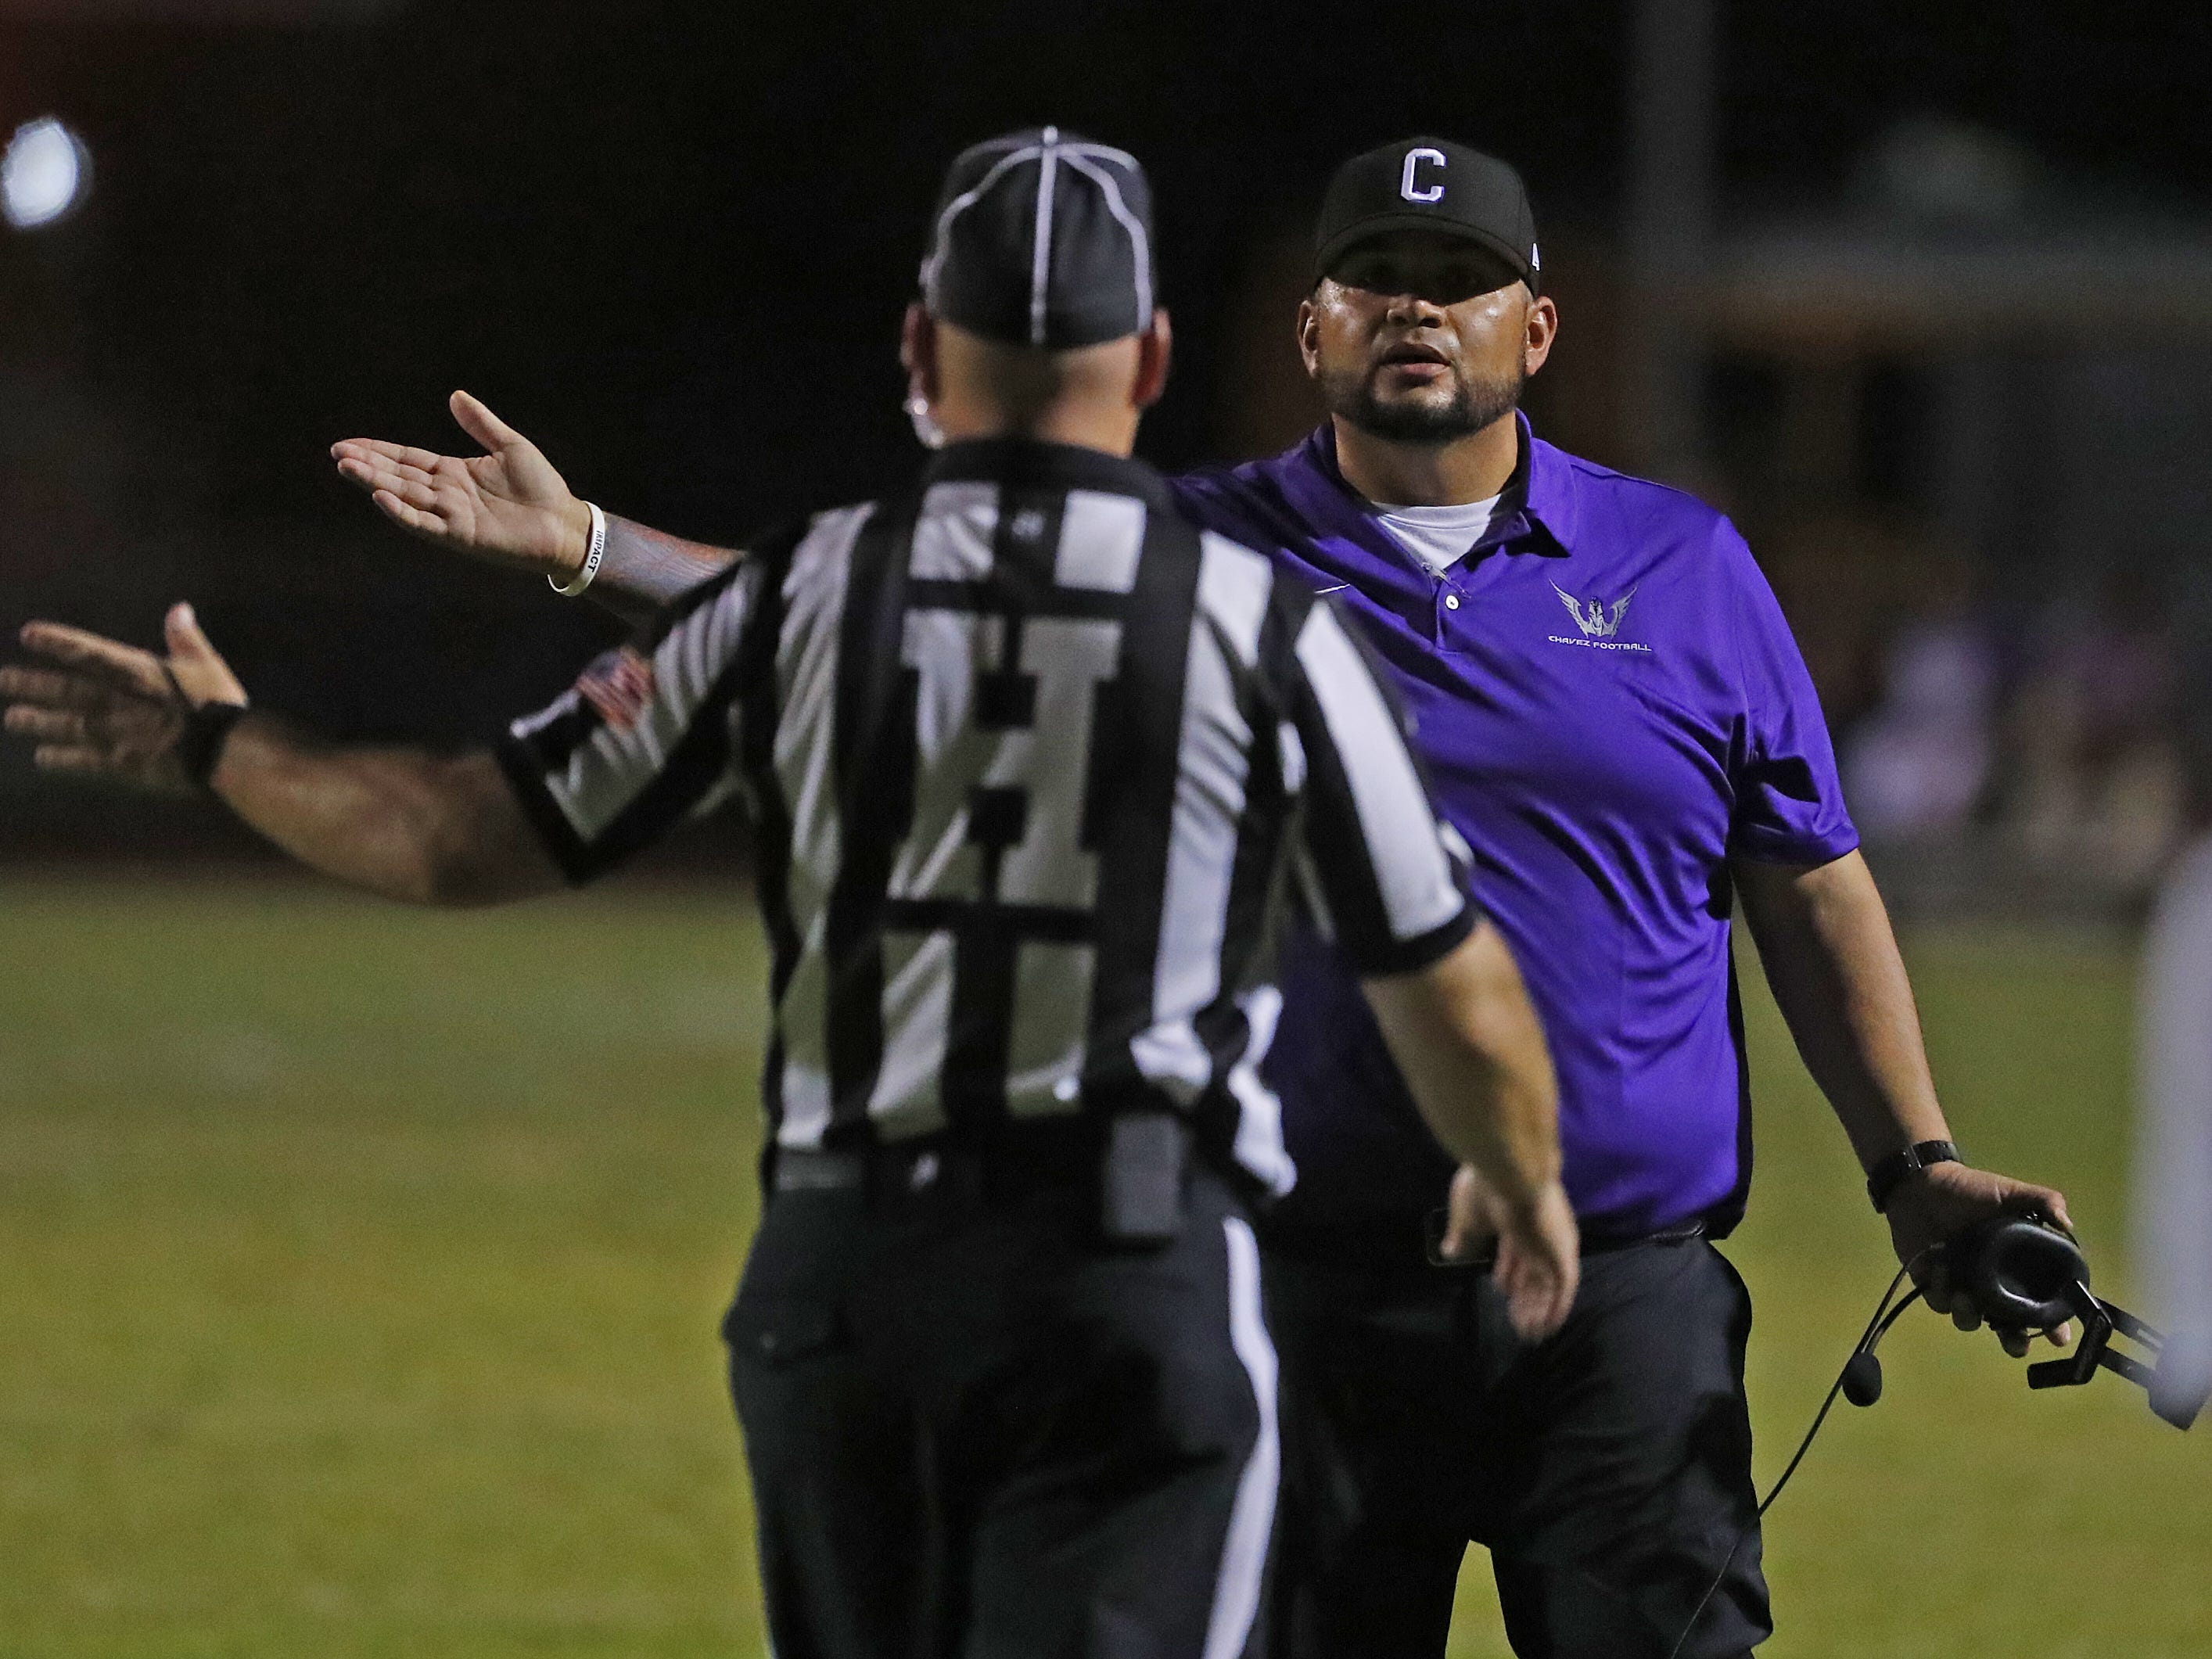 Cesar Chavez's head coach Manuel Alcantar argues with an official during a game at Cesar Chavez High School in Phoenix, Ariz. on Aug. 23, 2018.  #azhsfb